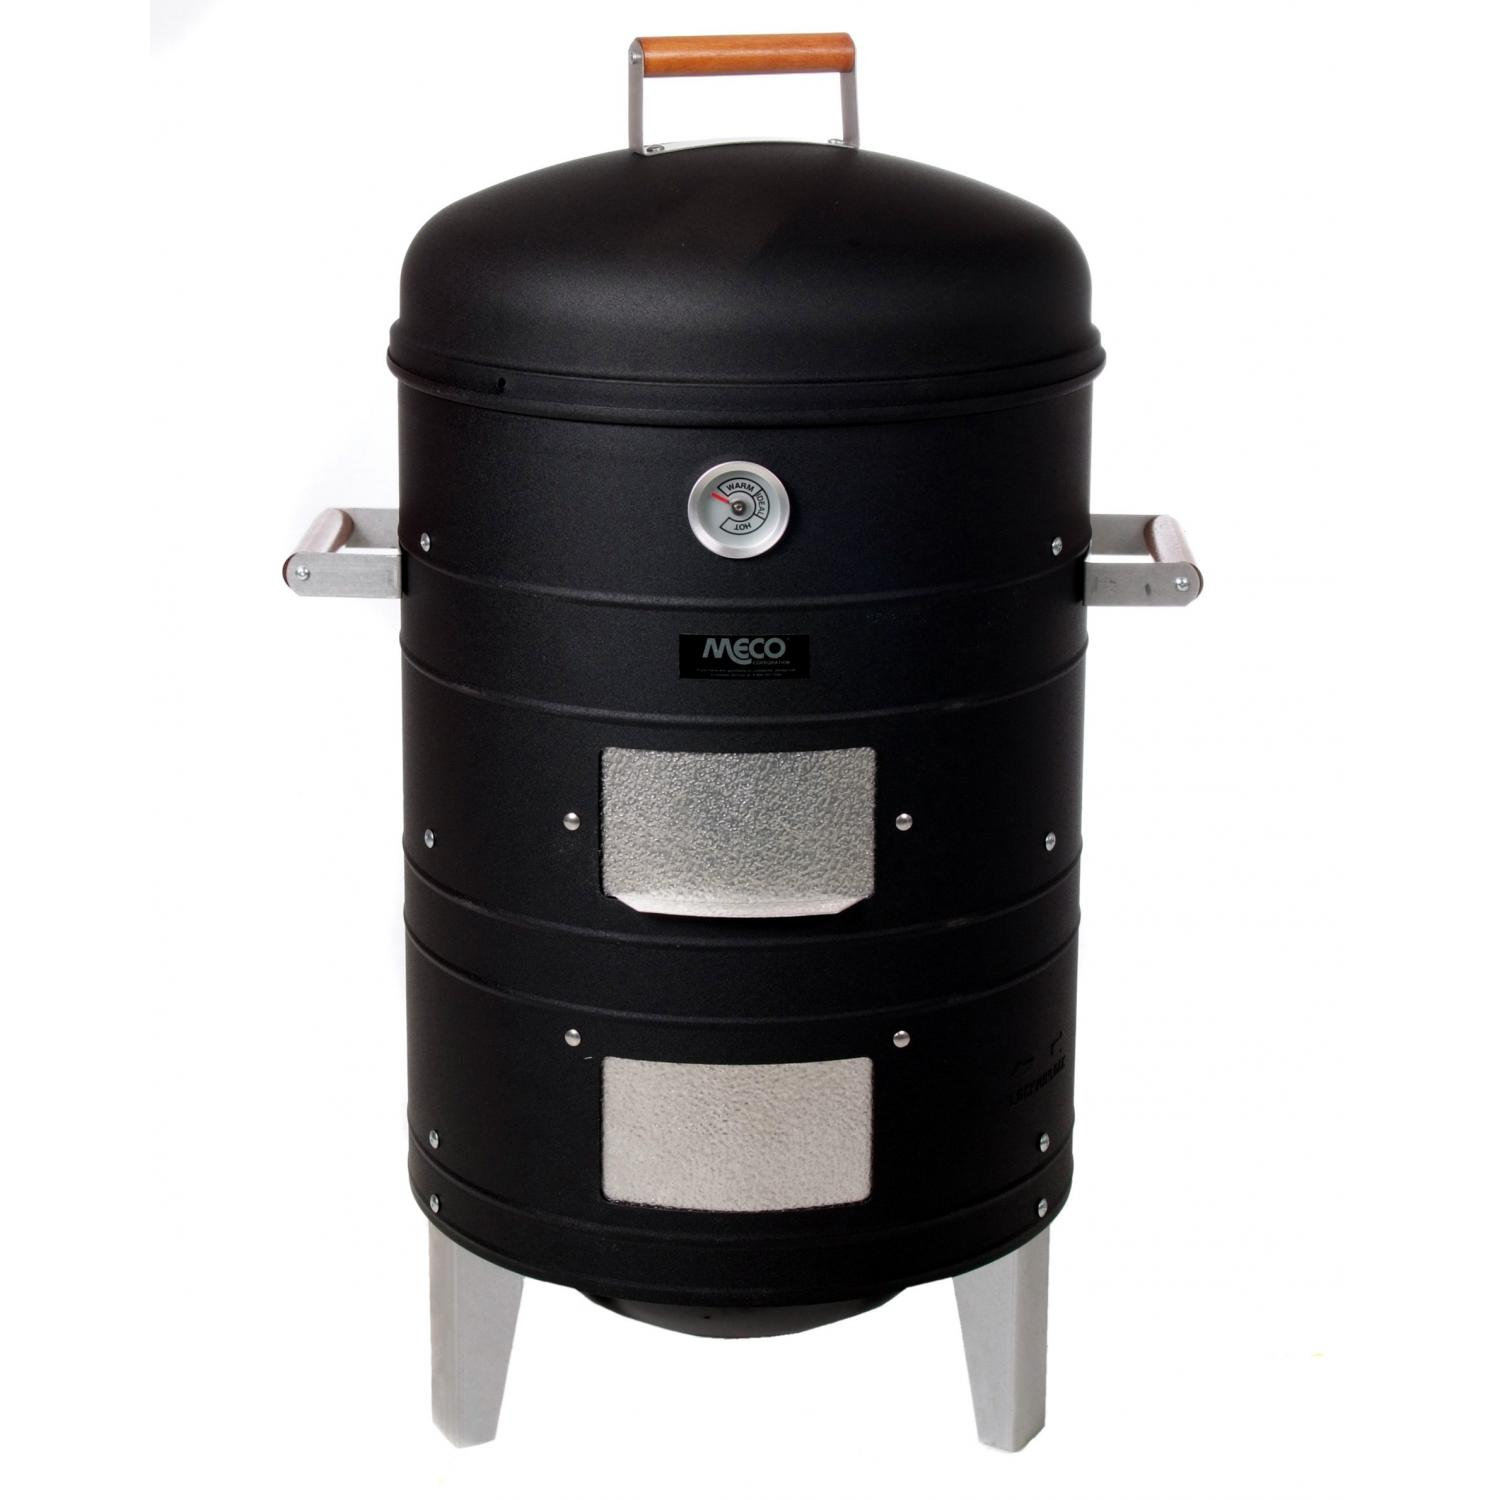 Meco Smokers - 5023I Charcoal Water Smoker - Black